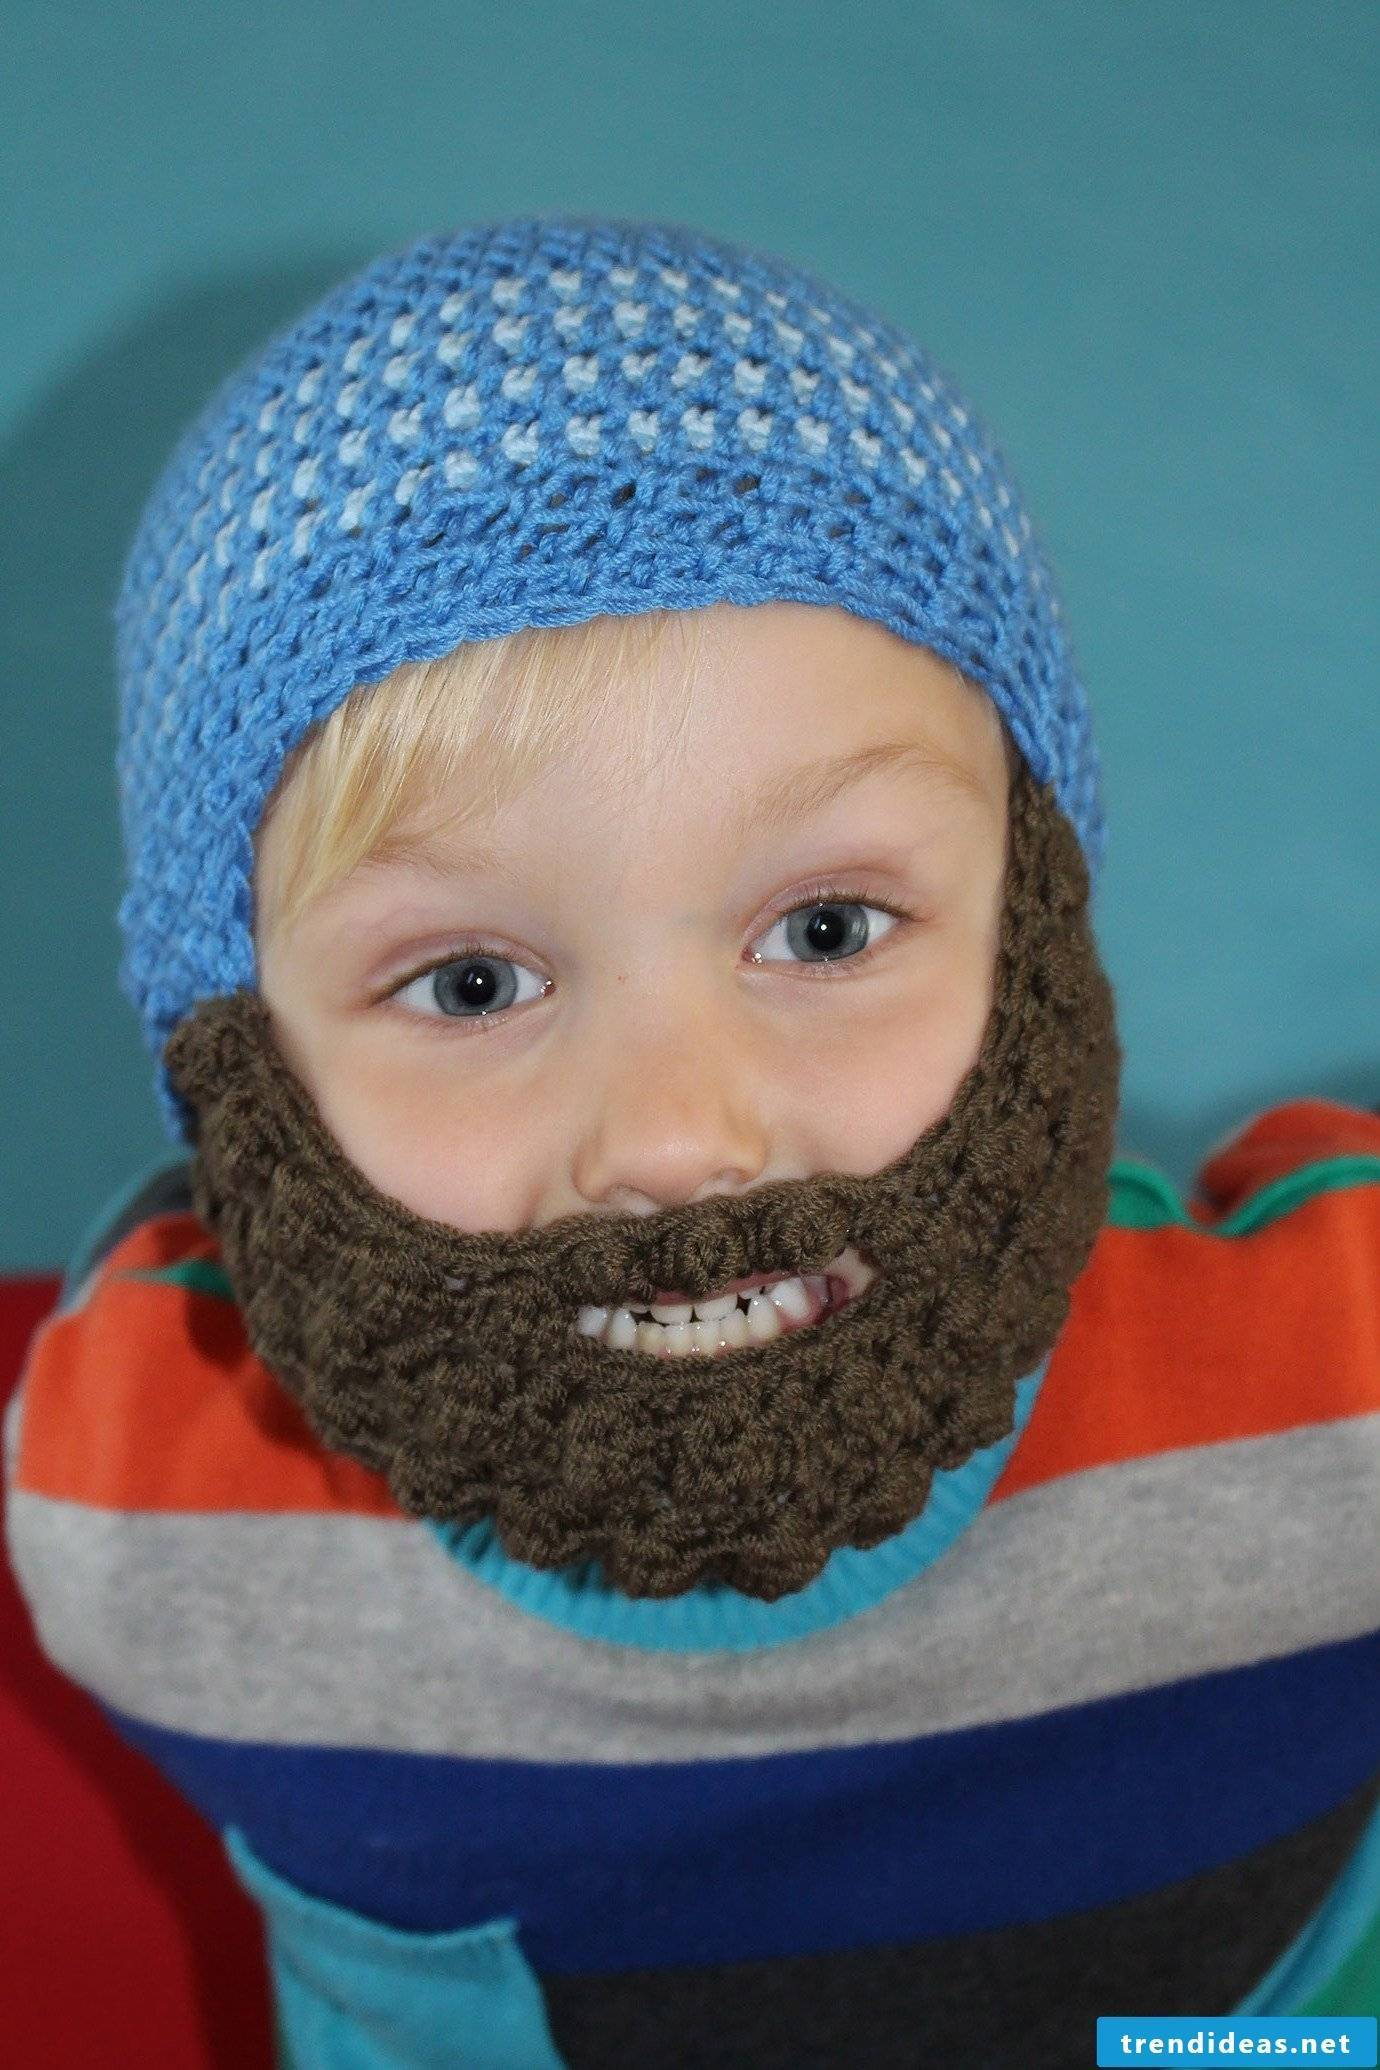 Crochet a fun hat for your child